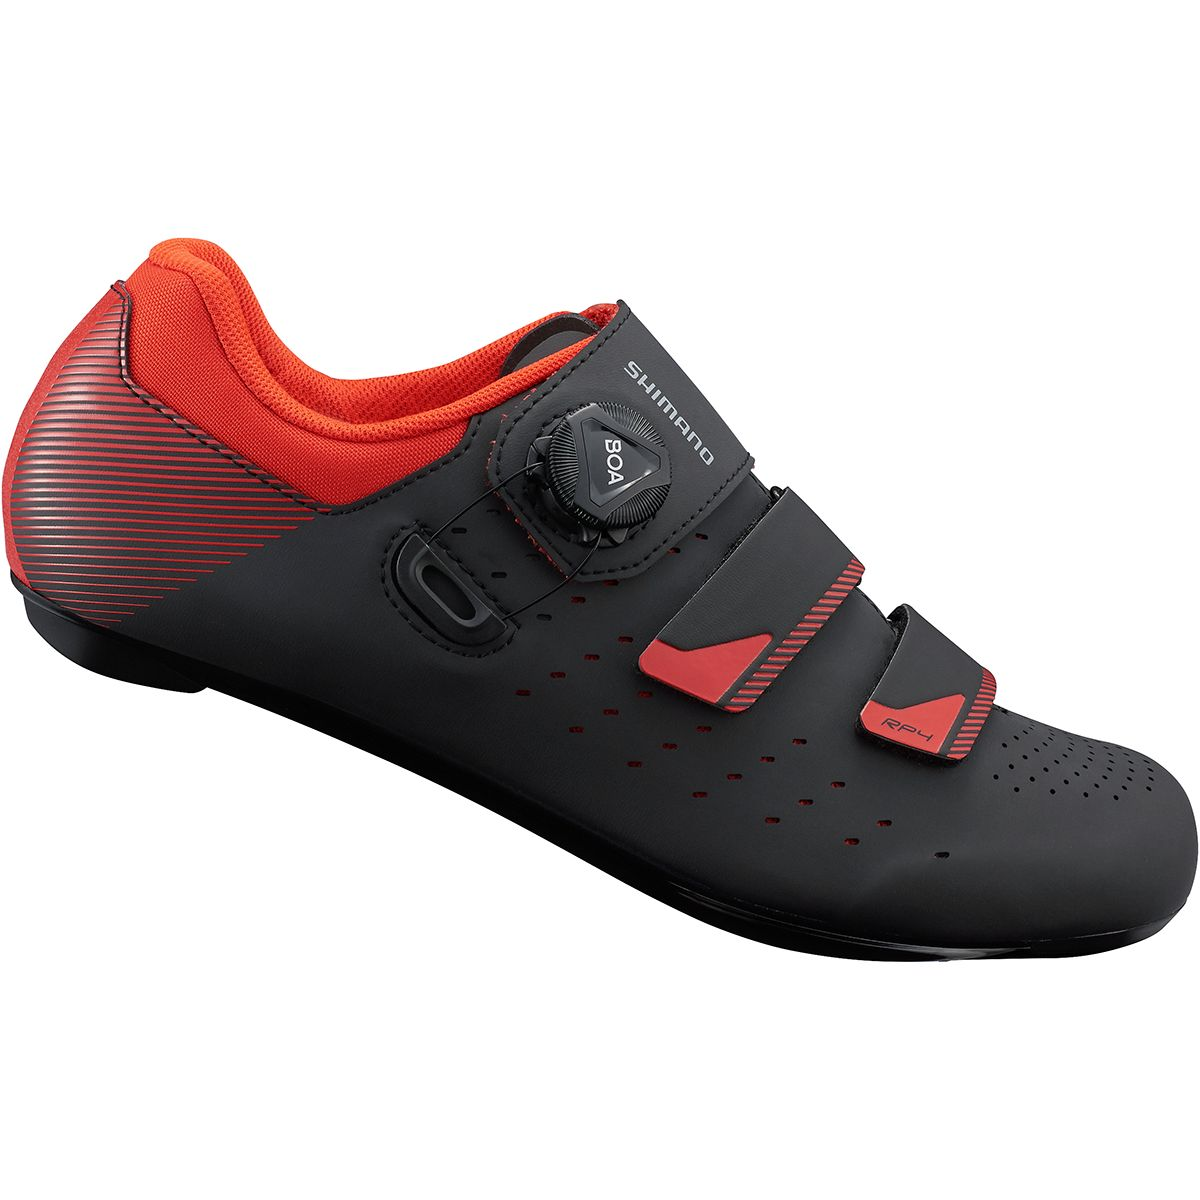 SH-RP4 road shoes